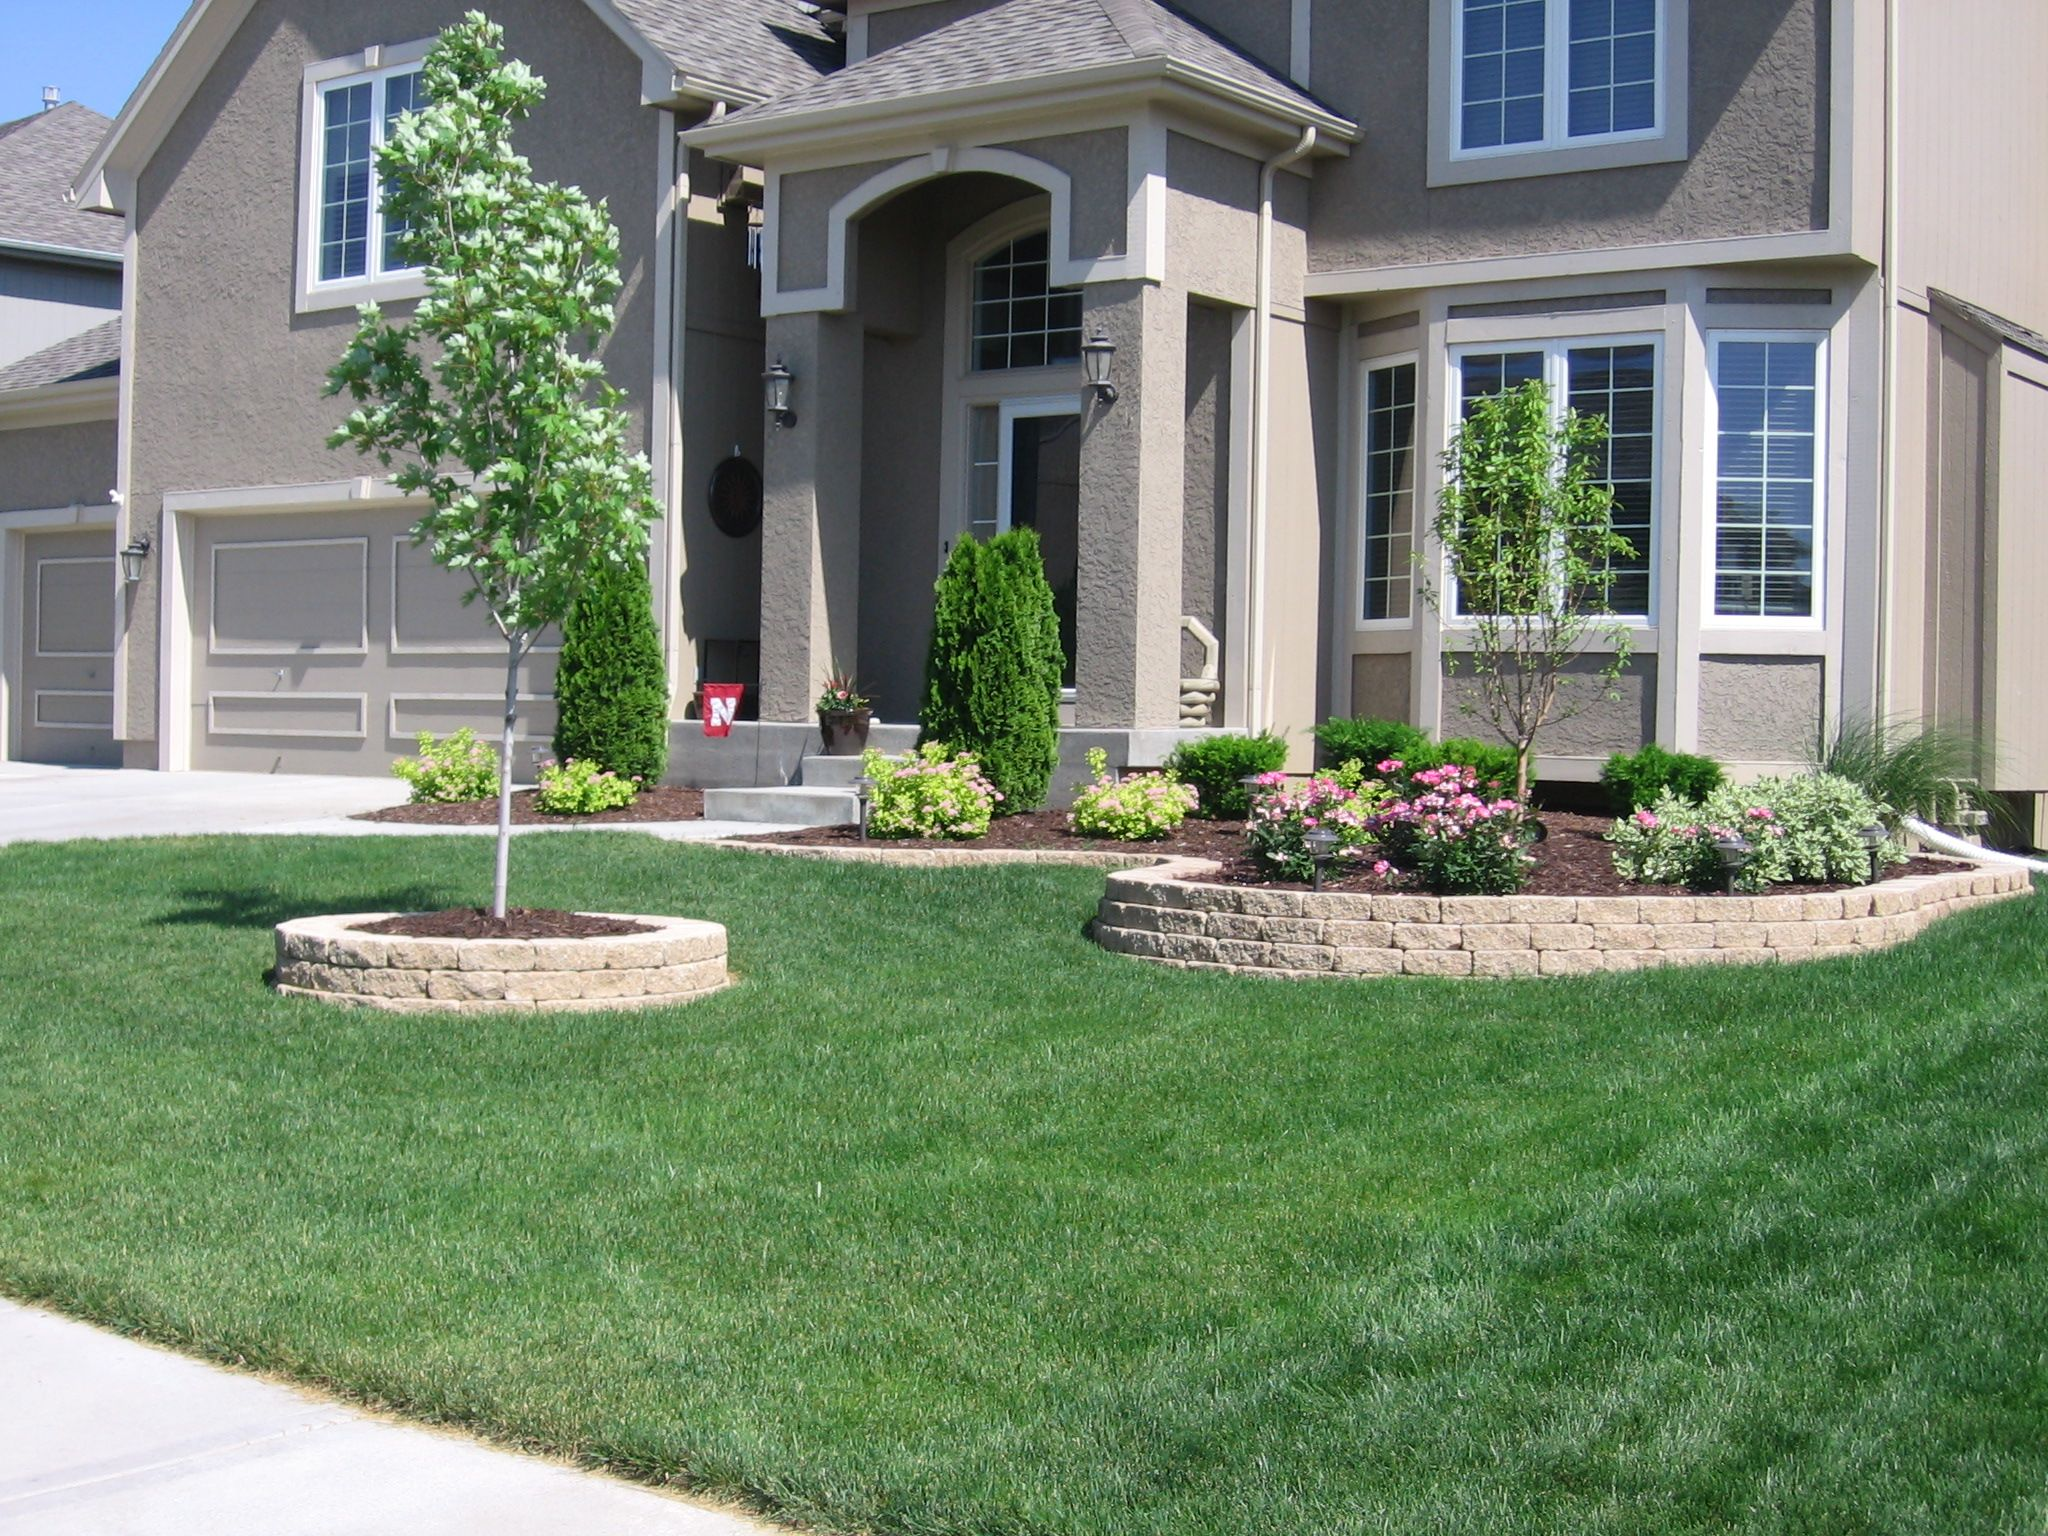 landscaping ideas for front of house with porch be prepared to follow these easy steps - Home Landscape Design Ideas